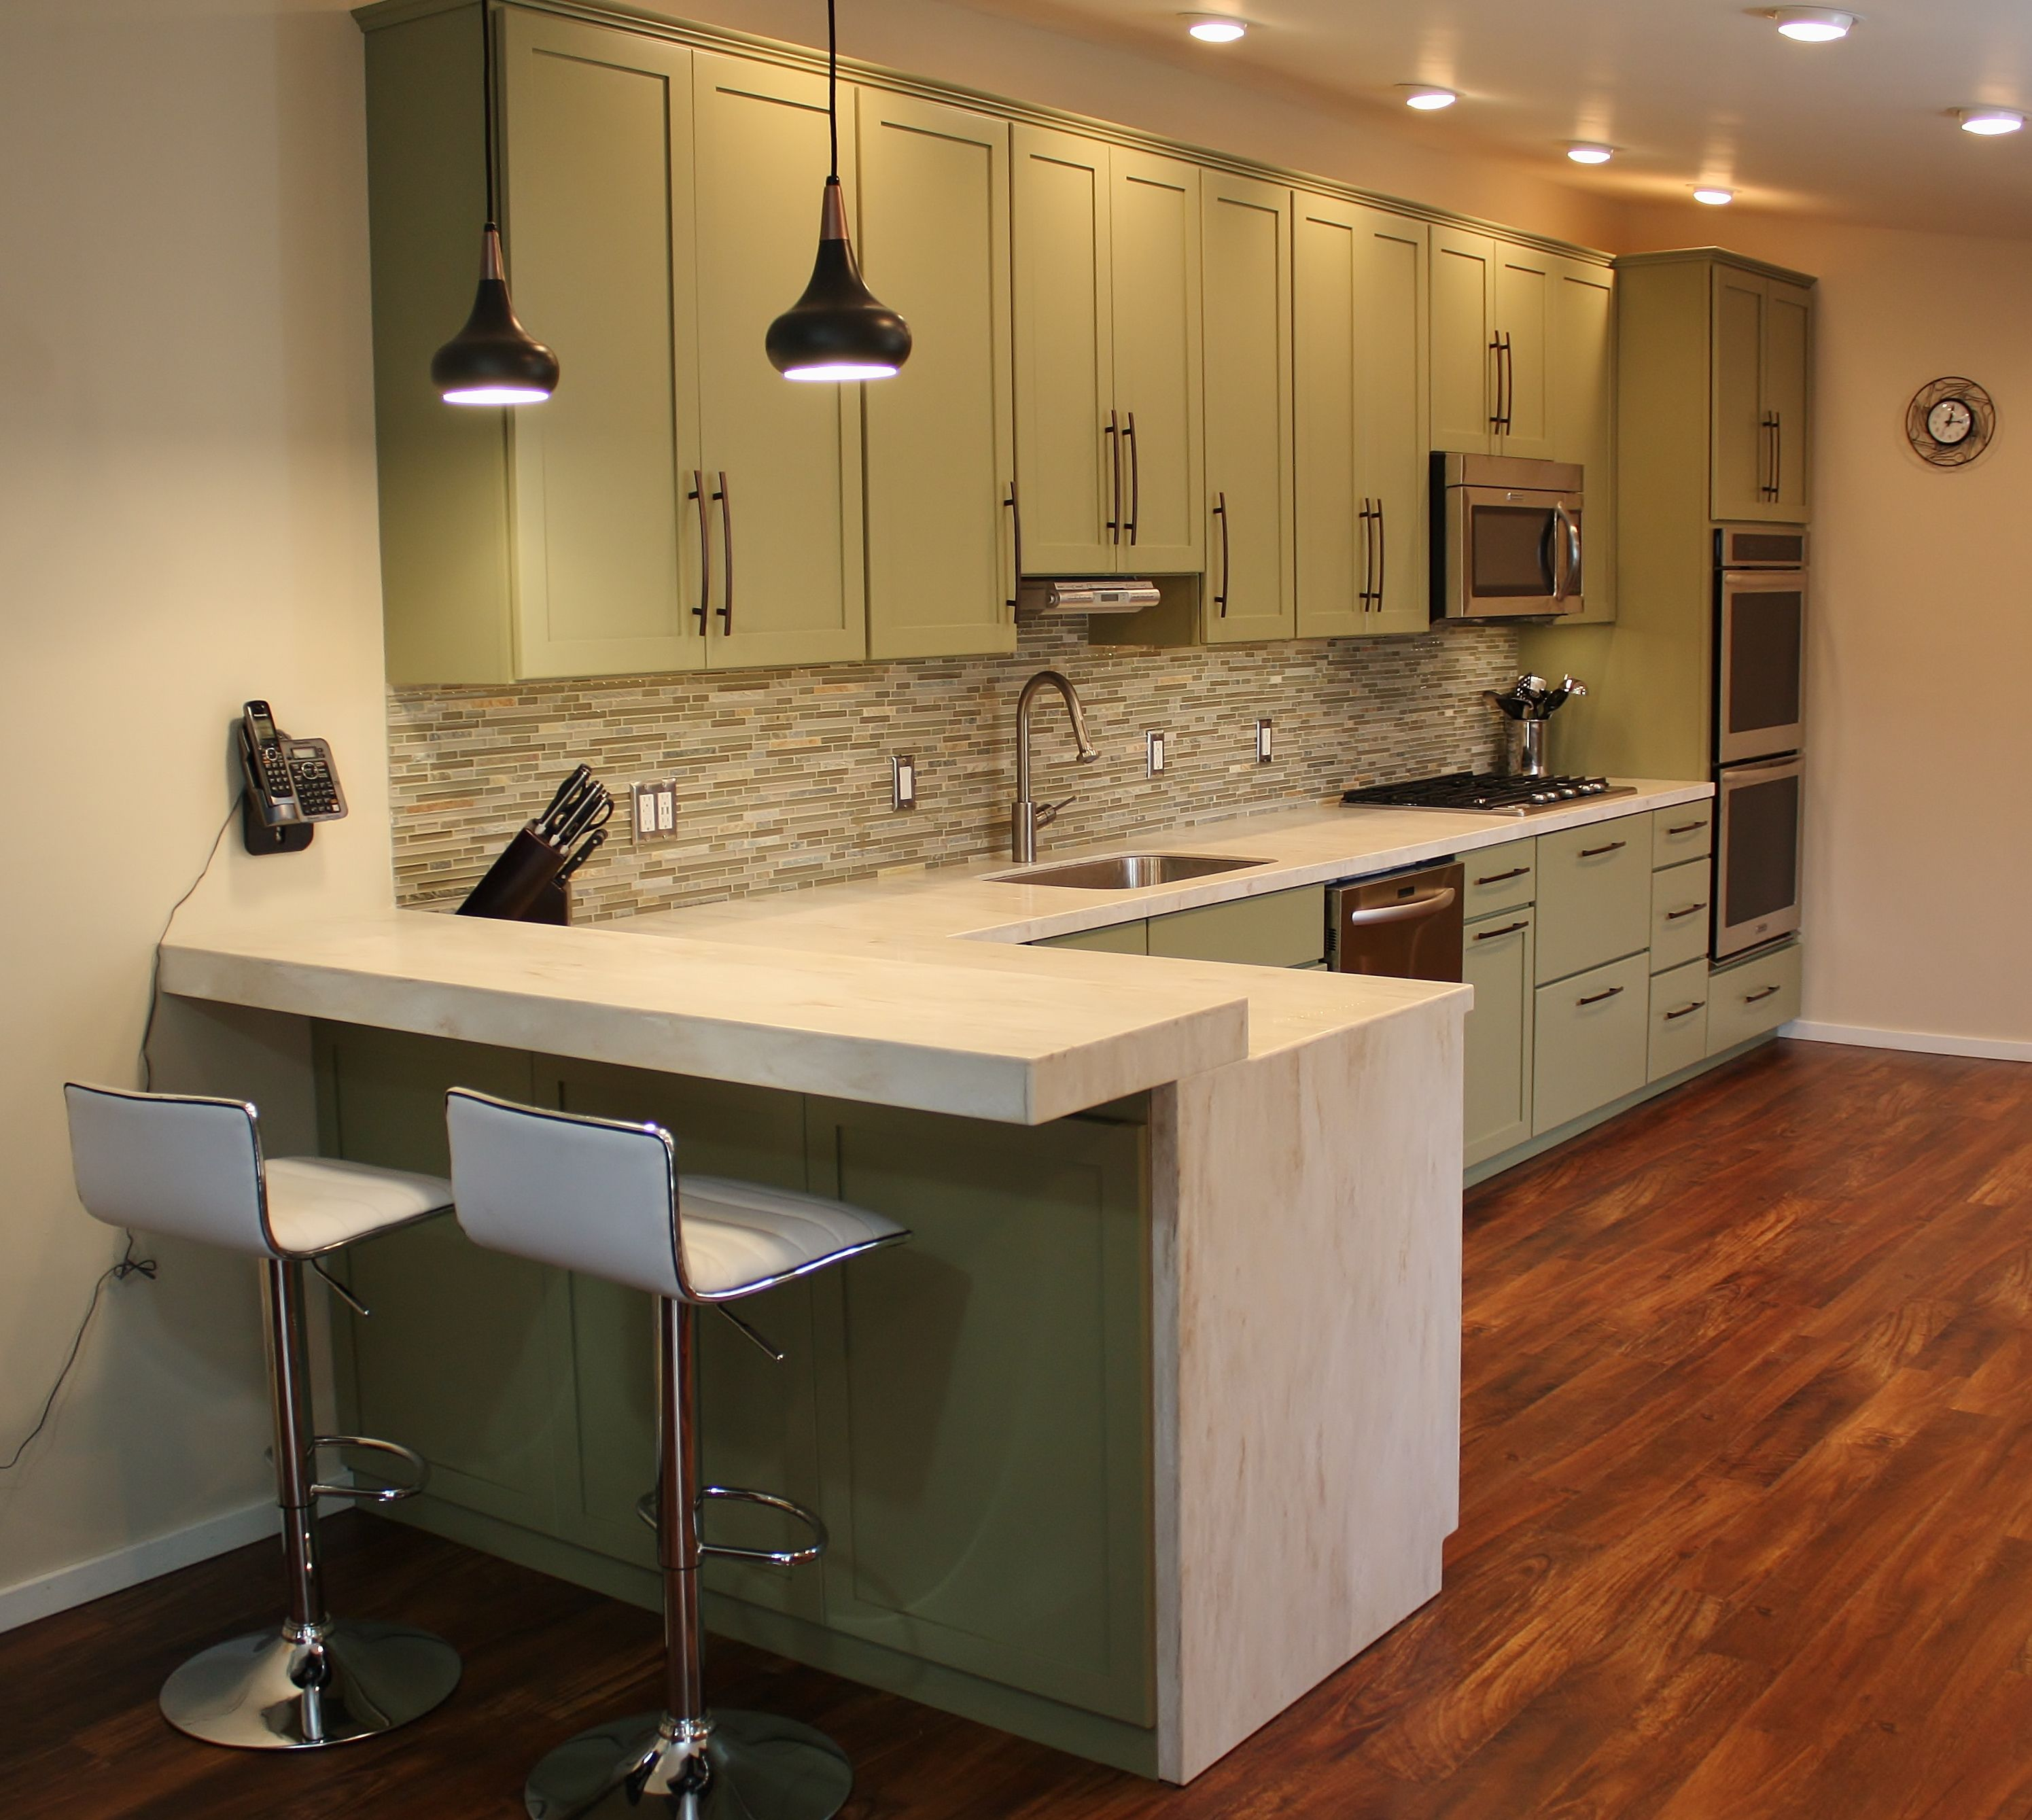 Holiday Kitchen simple shaker cabinets Corian Solid Surface